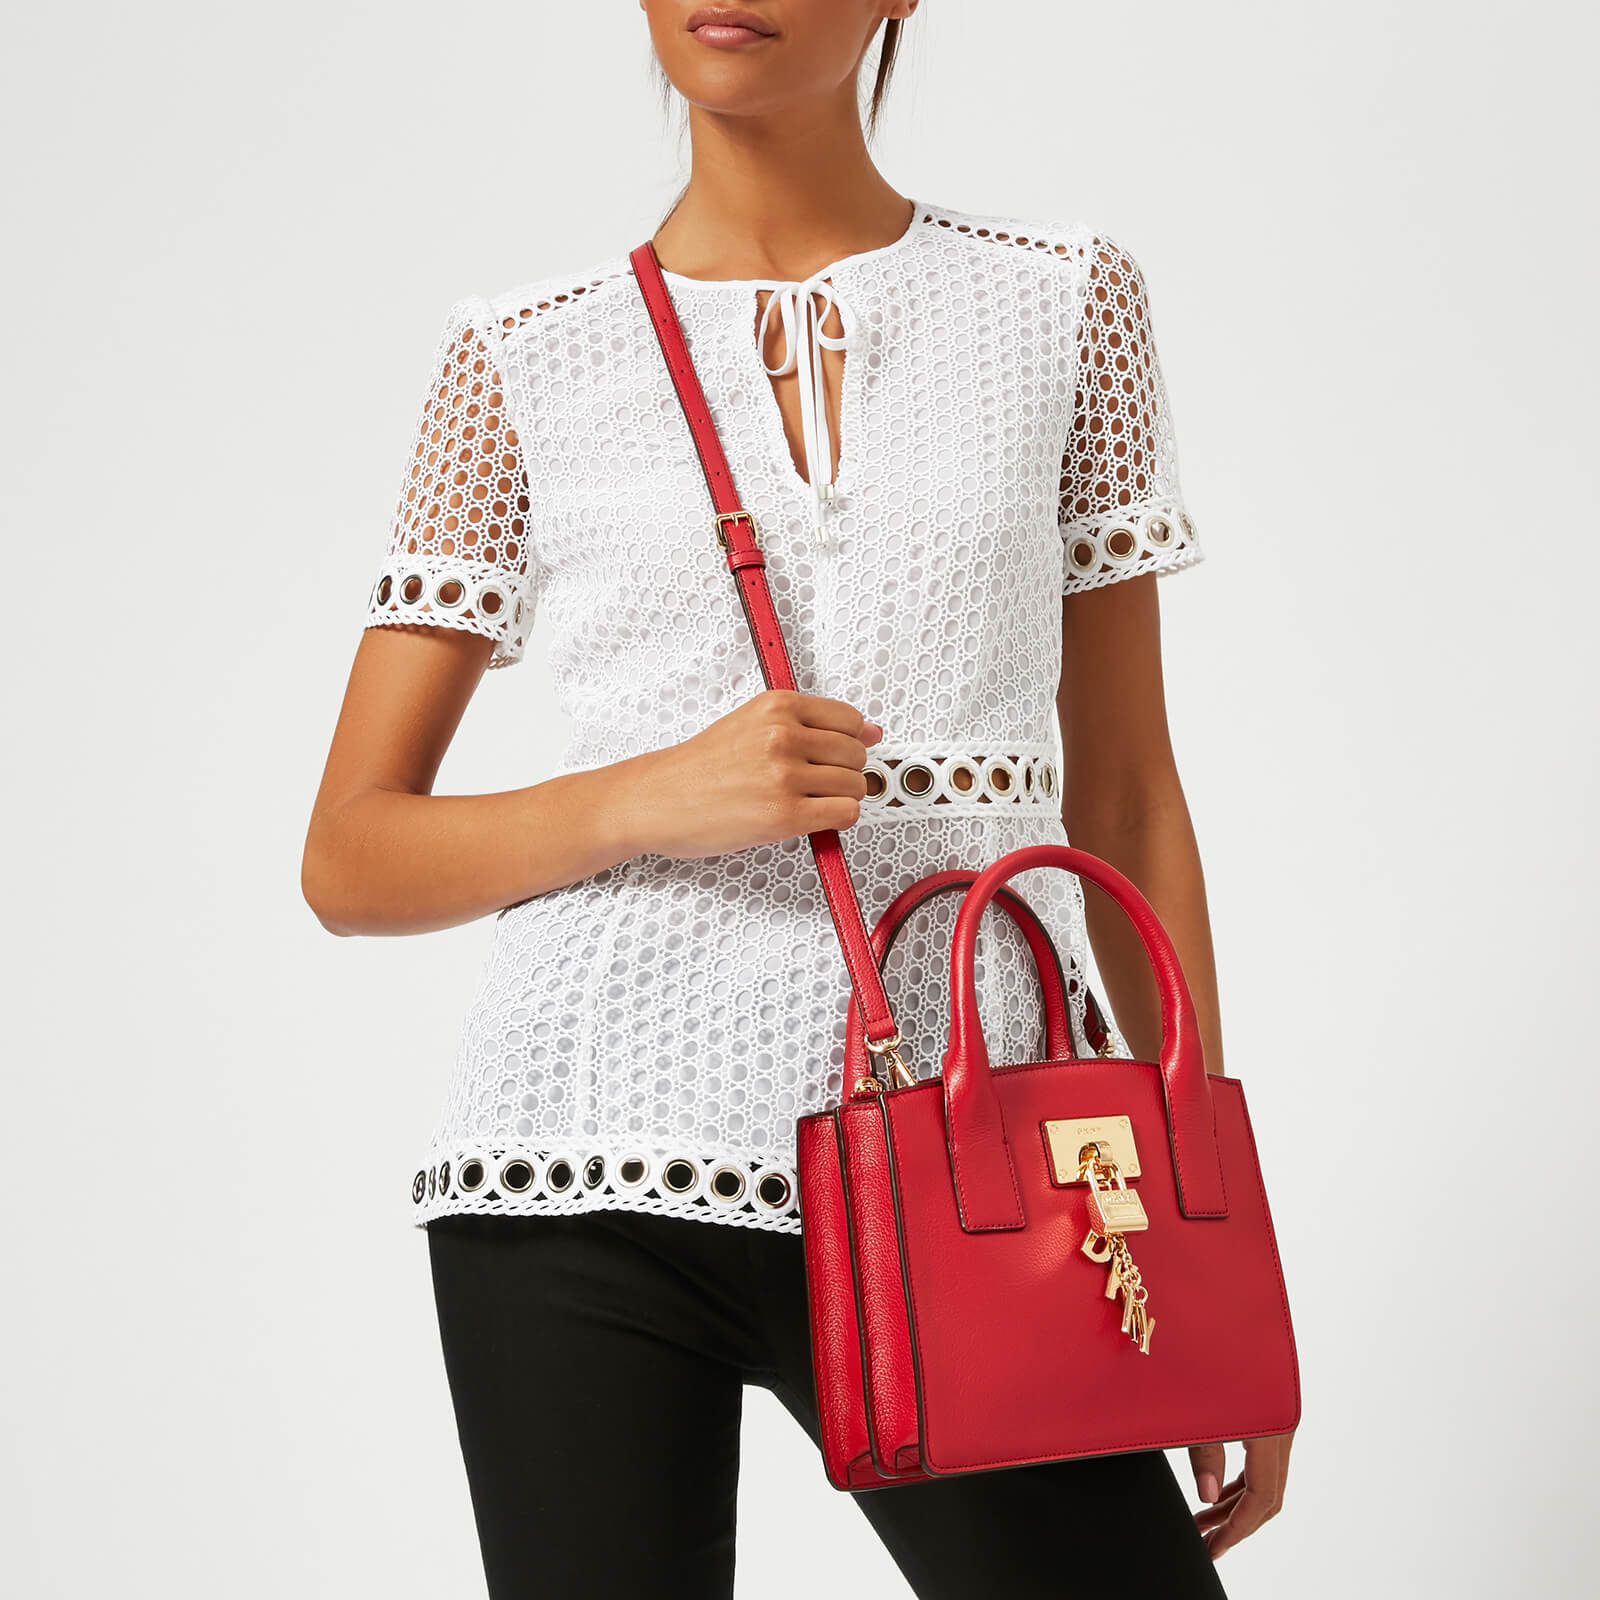 DKNY Women's Elissa Small Tote Bag - Safari Red